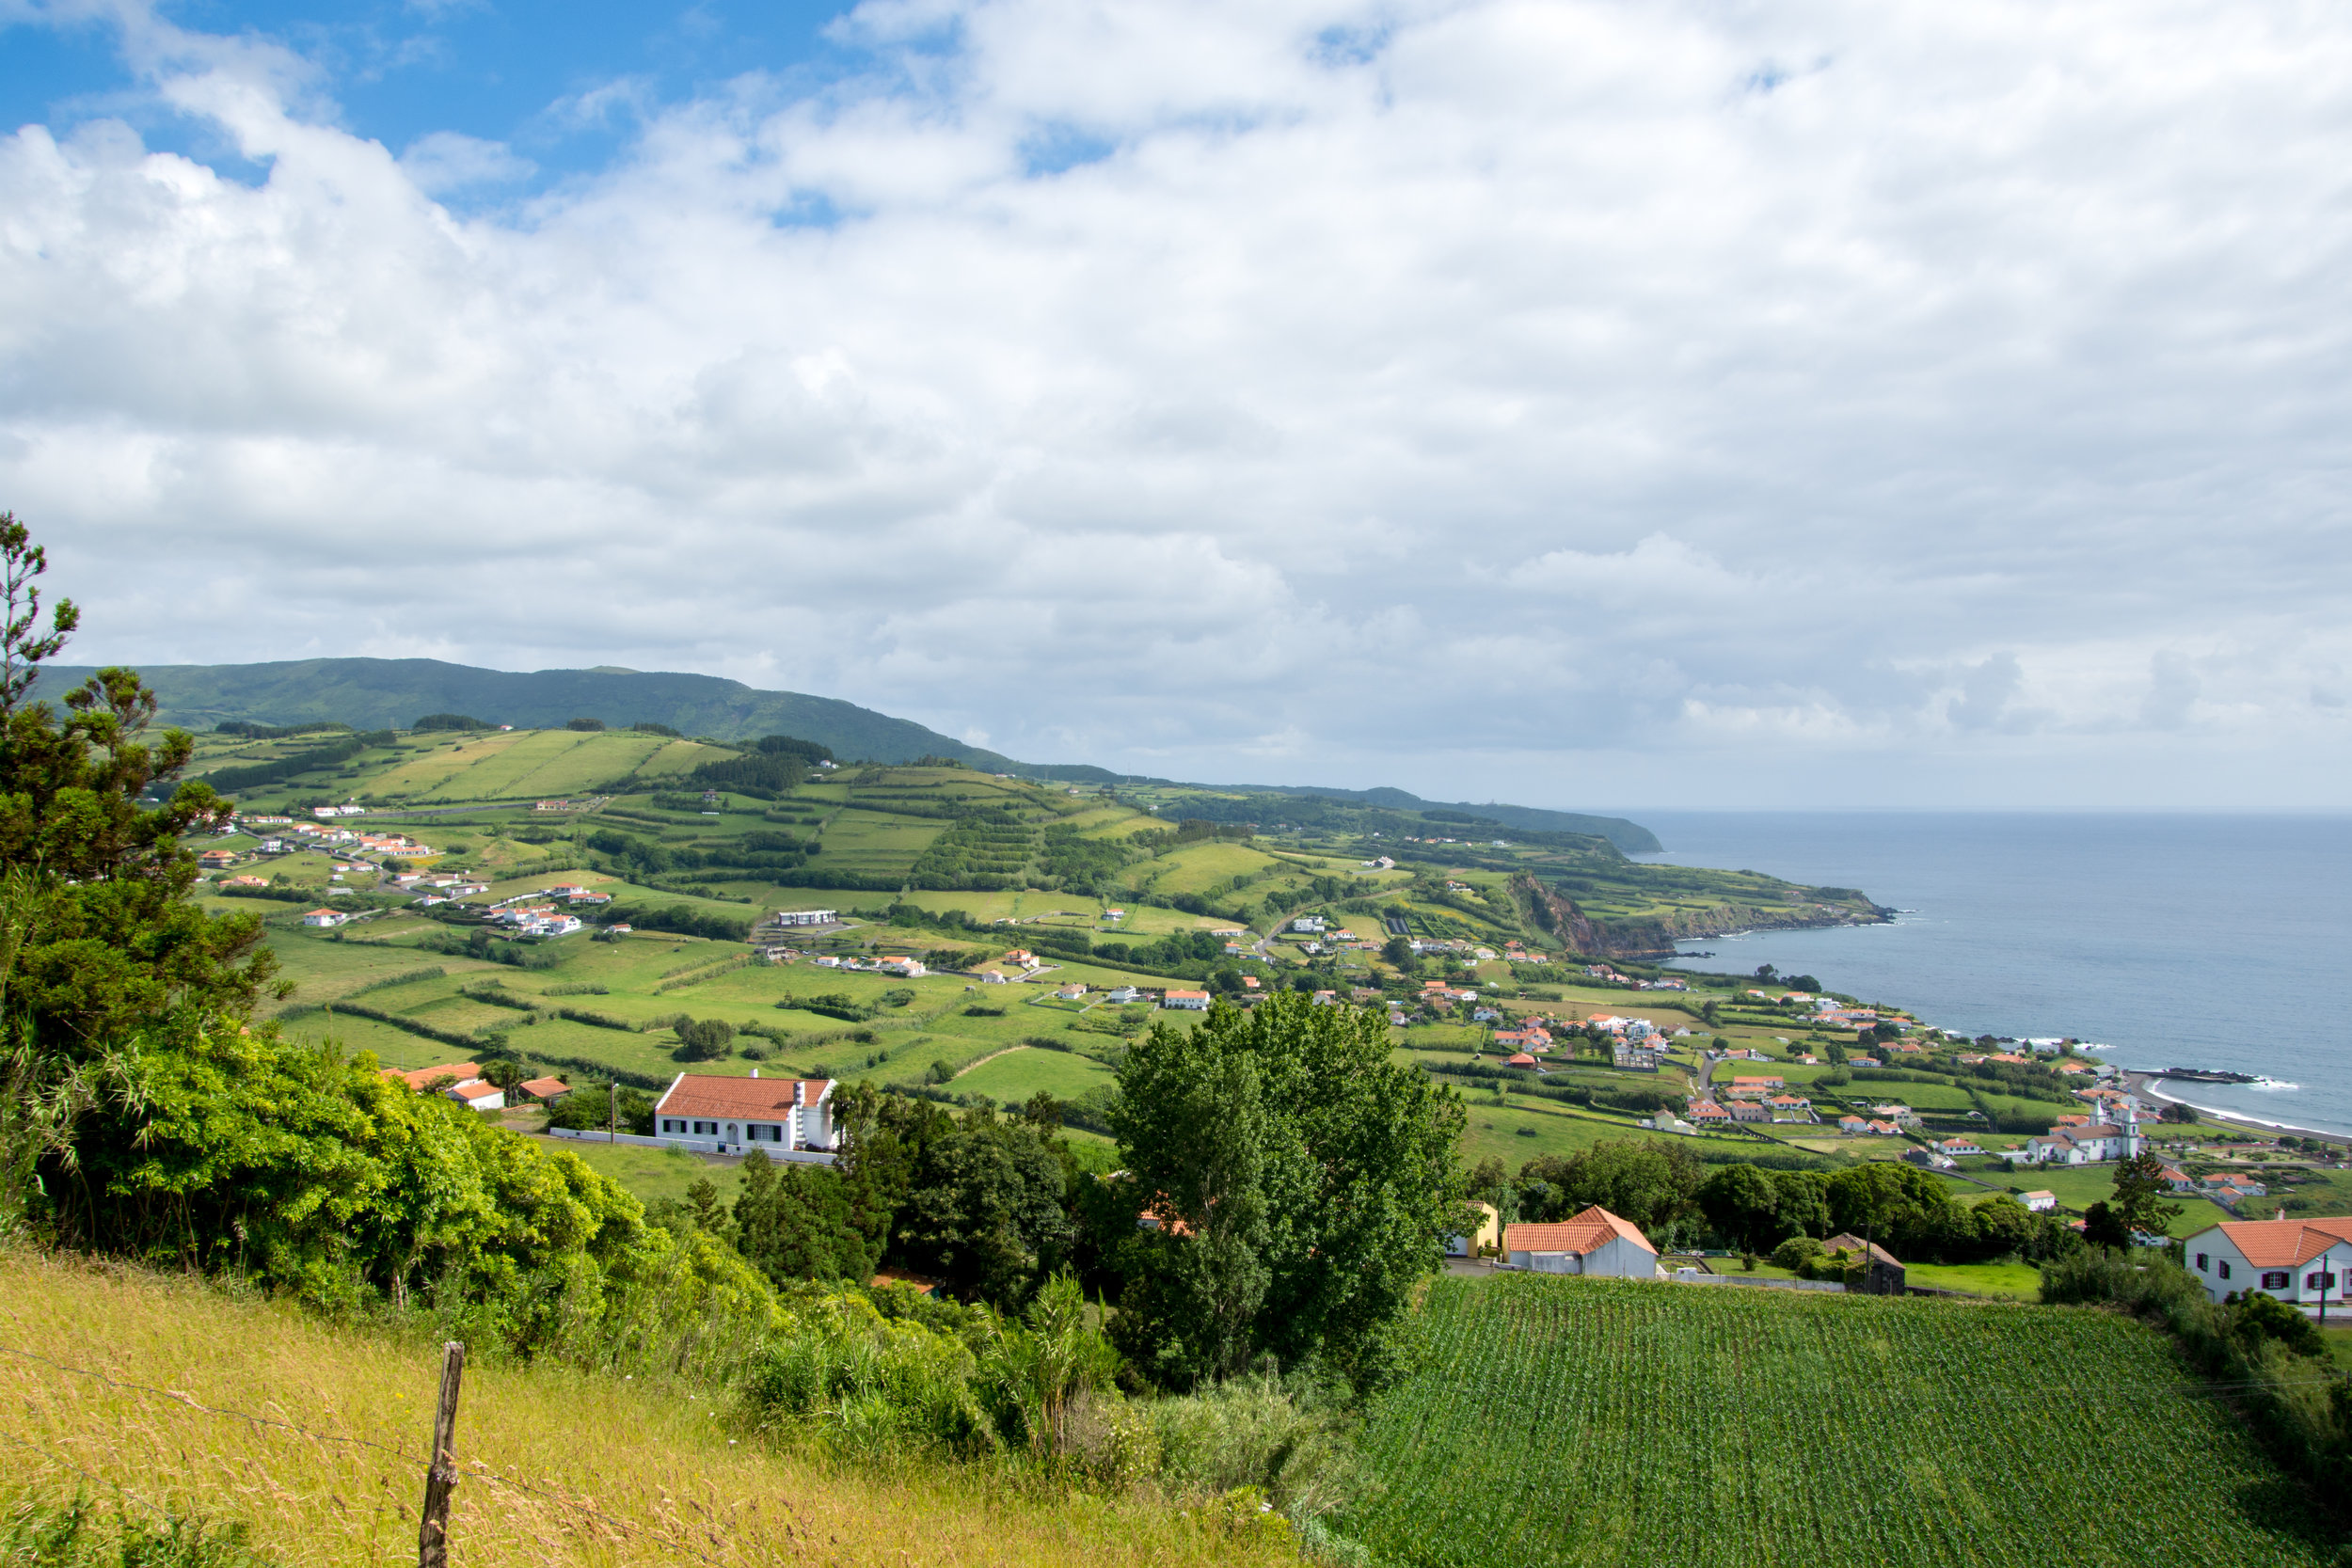 View of Faial